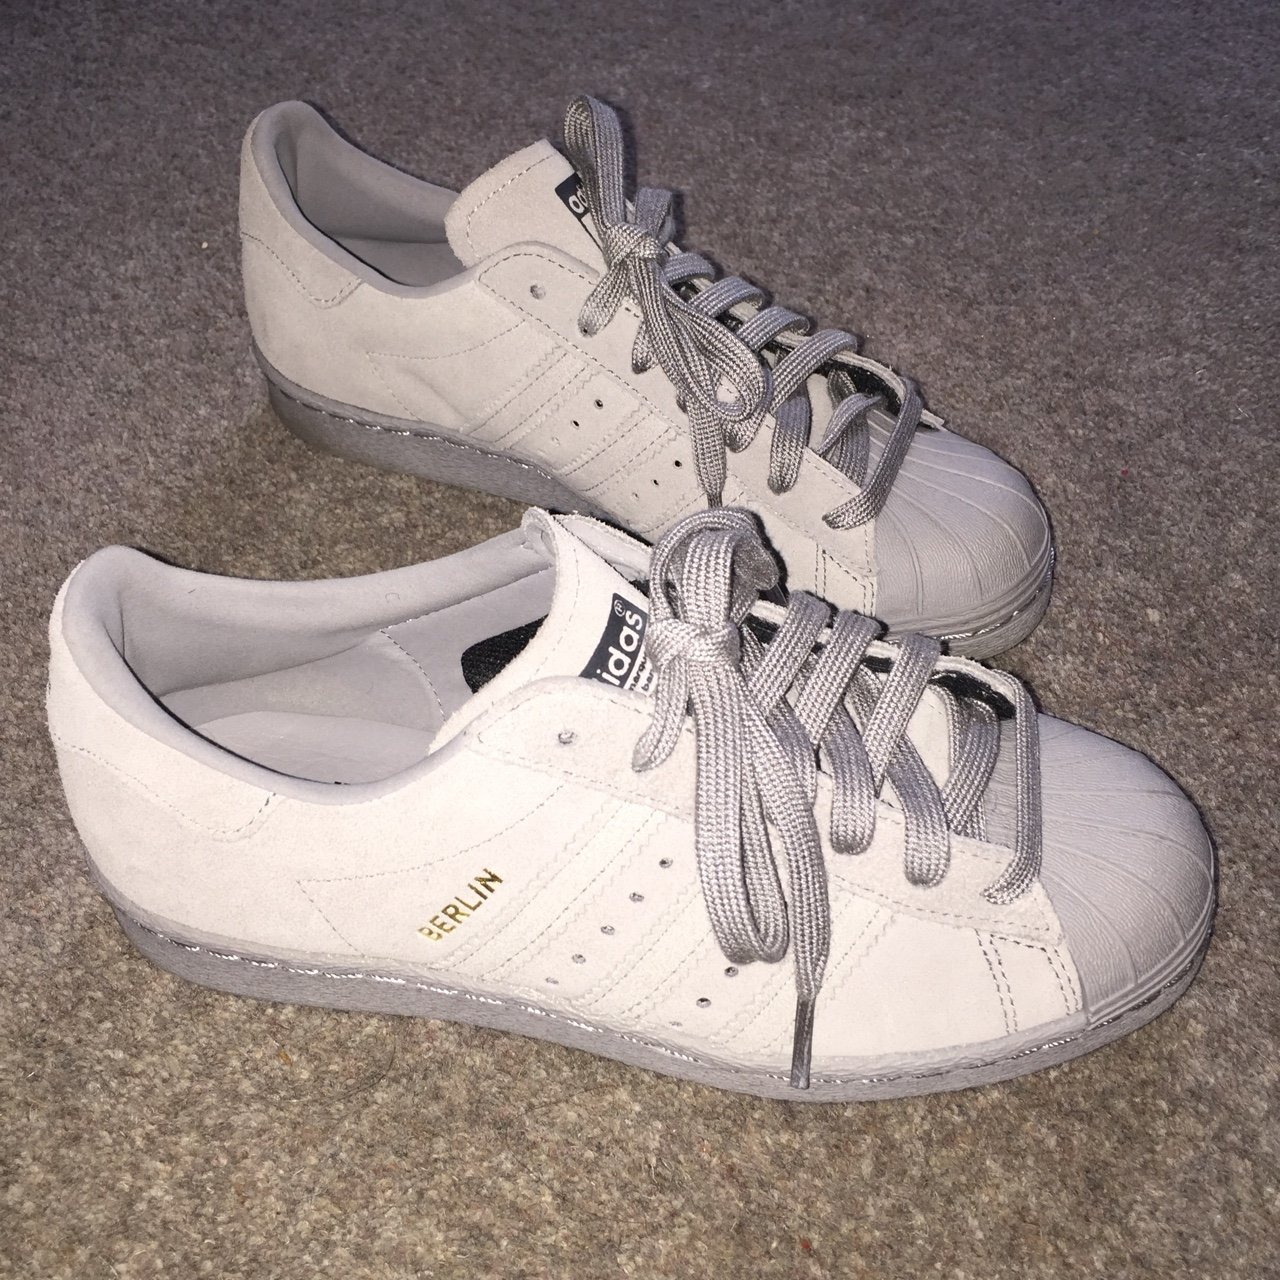 buy online 2bd53 42dbd Adidas Superstar Berlin, suede grey. Purchased from brand No - Depop